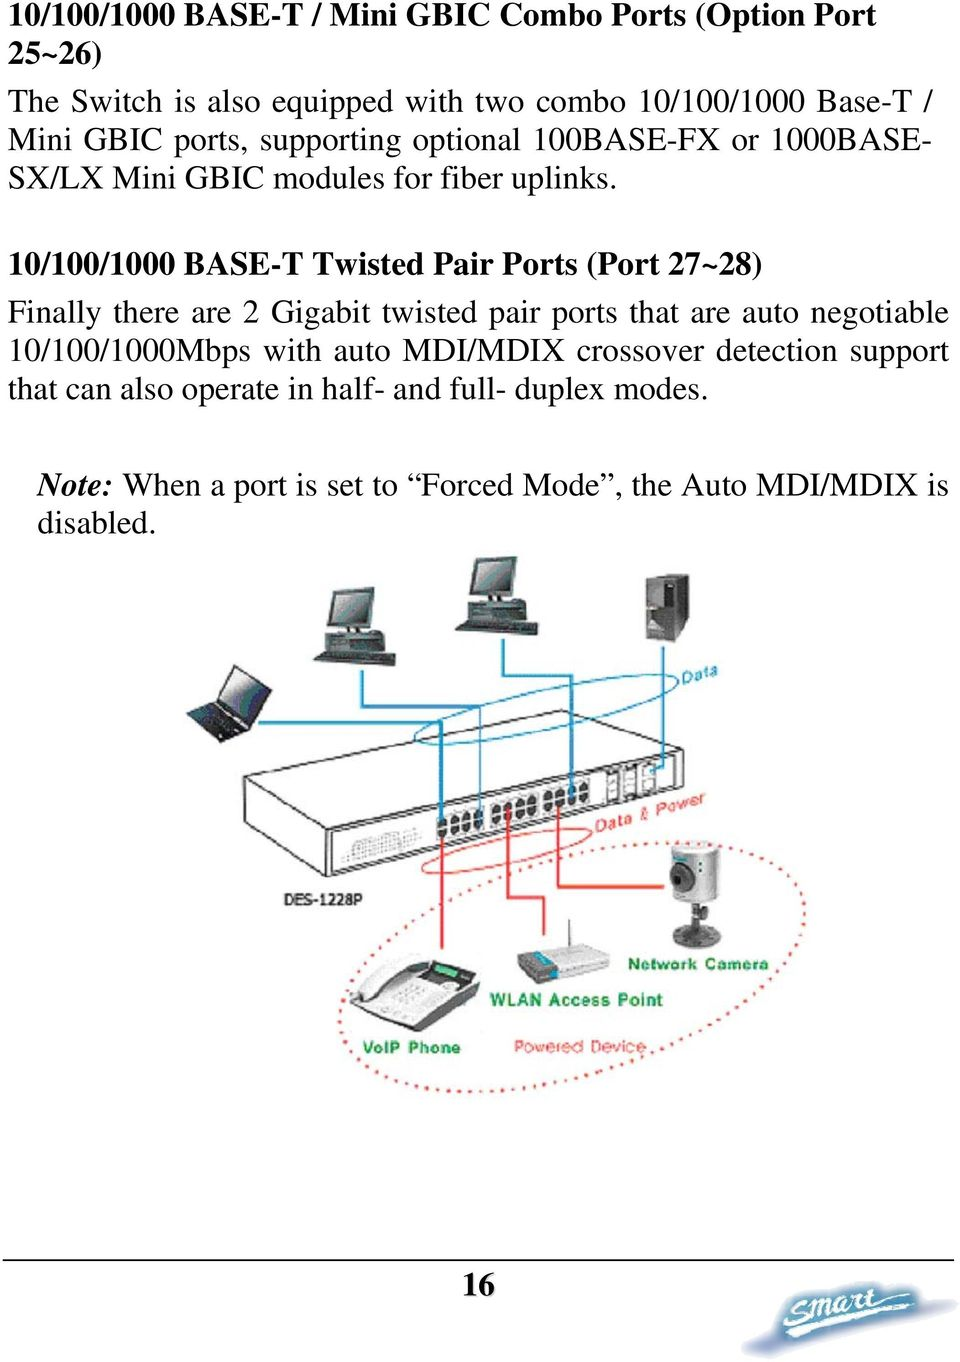 10/100/1000 BASE-T Twisted Pair Ports (Port 27~28) Finally there are 2 Gigabit twisted pair ports that are auto negotiable